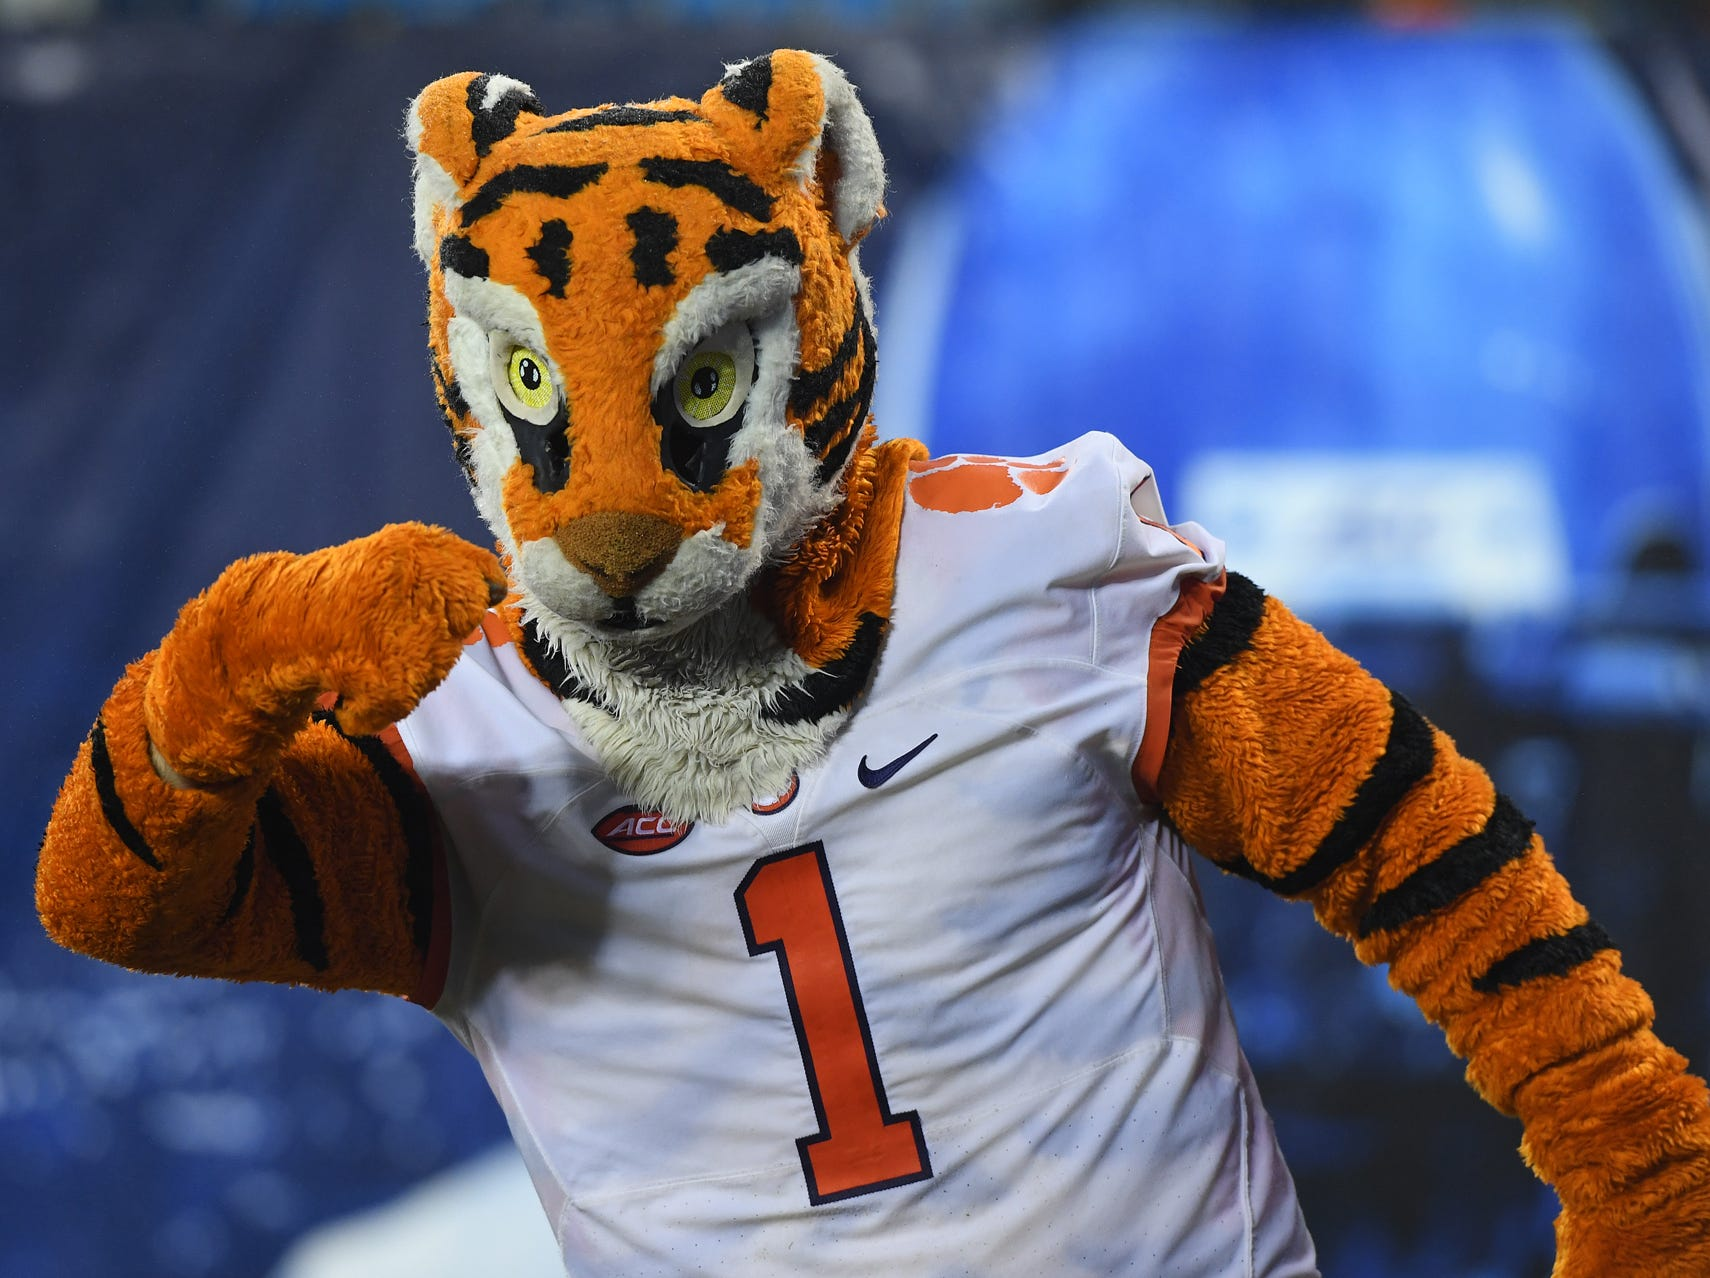 The Clemson Tiger during the 3rd quarter of the Dr. Pepper ACC Championship at Bank of America Stadium in Charlotte, N.C. Saturday, December 1, 2018.